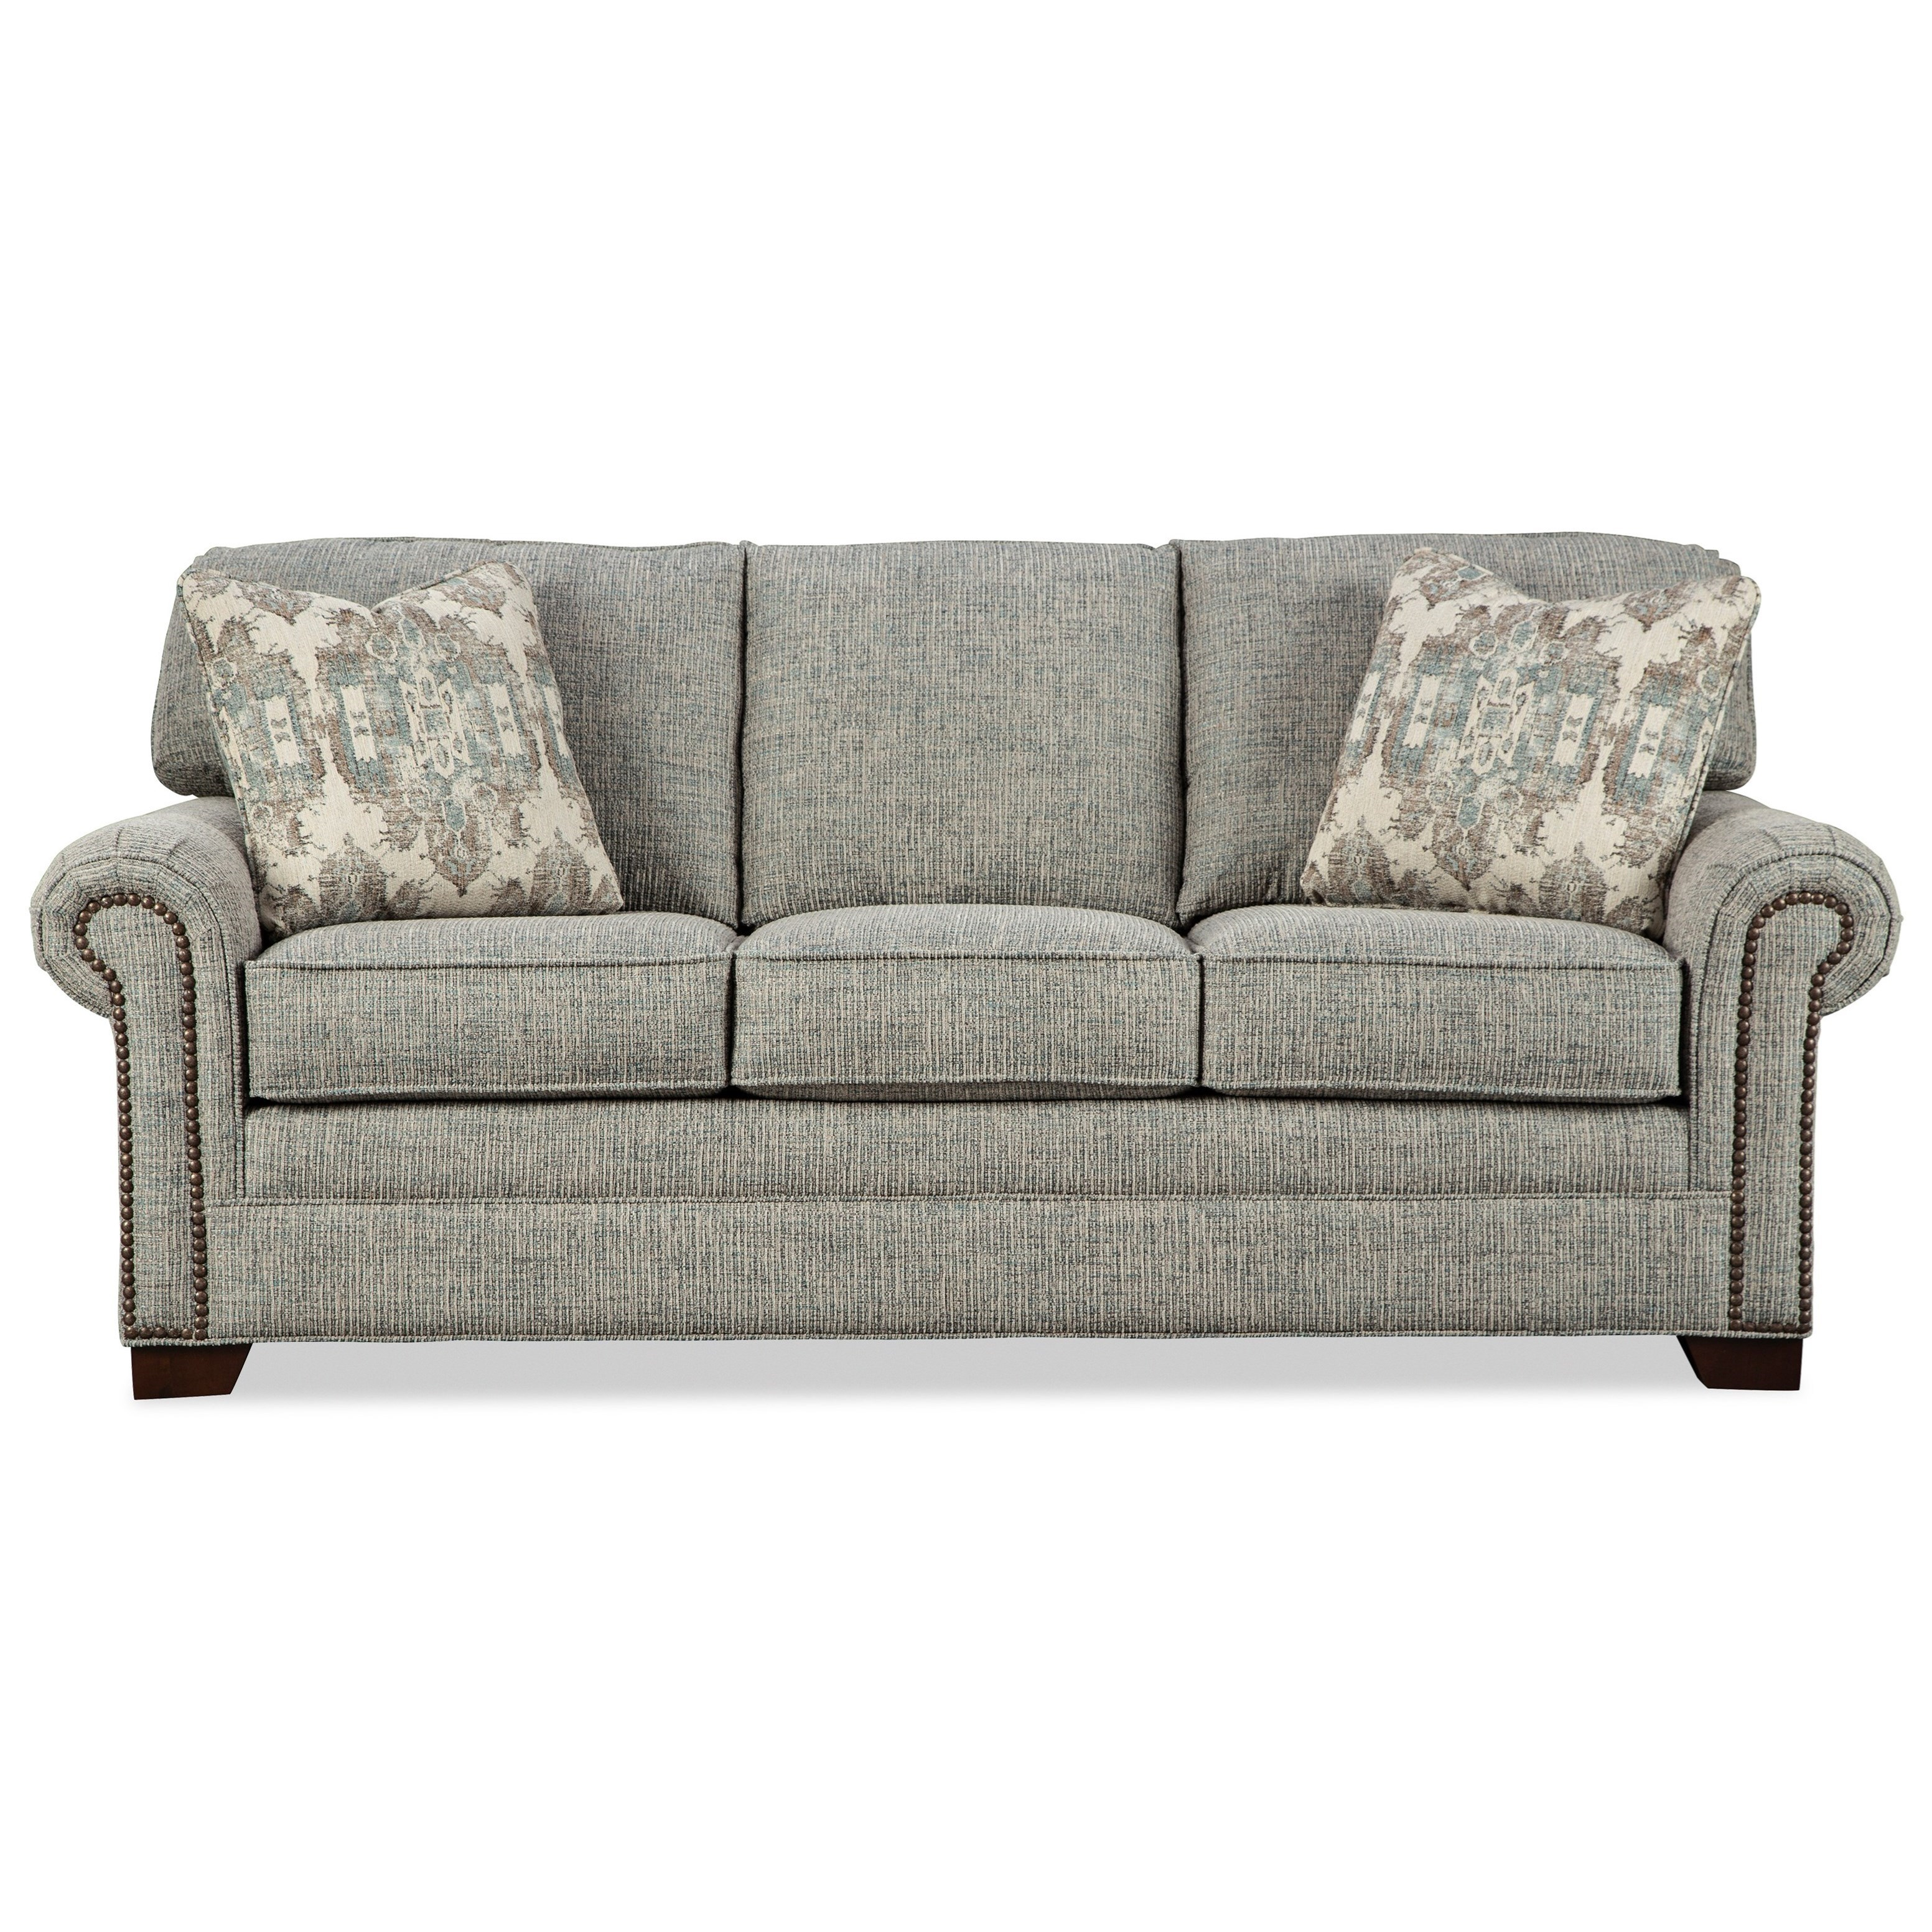 7565 Sofa by Craftmaster at Baer's Furniture